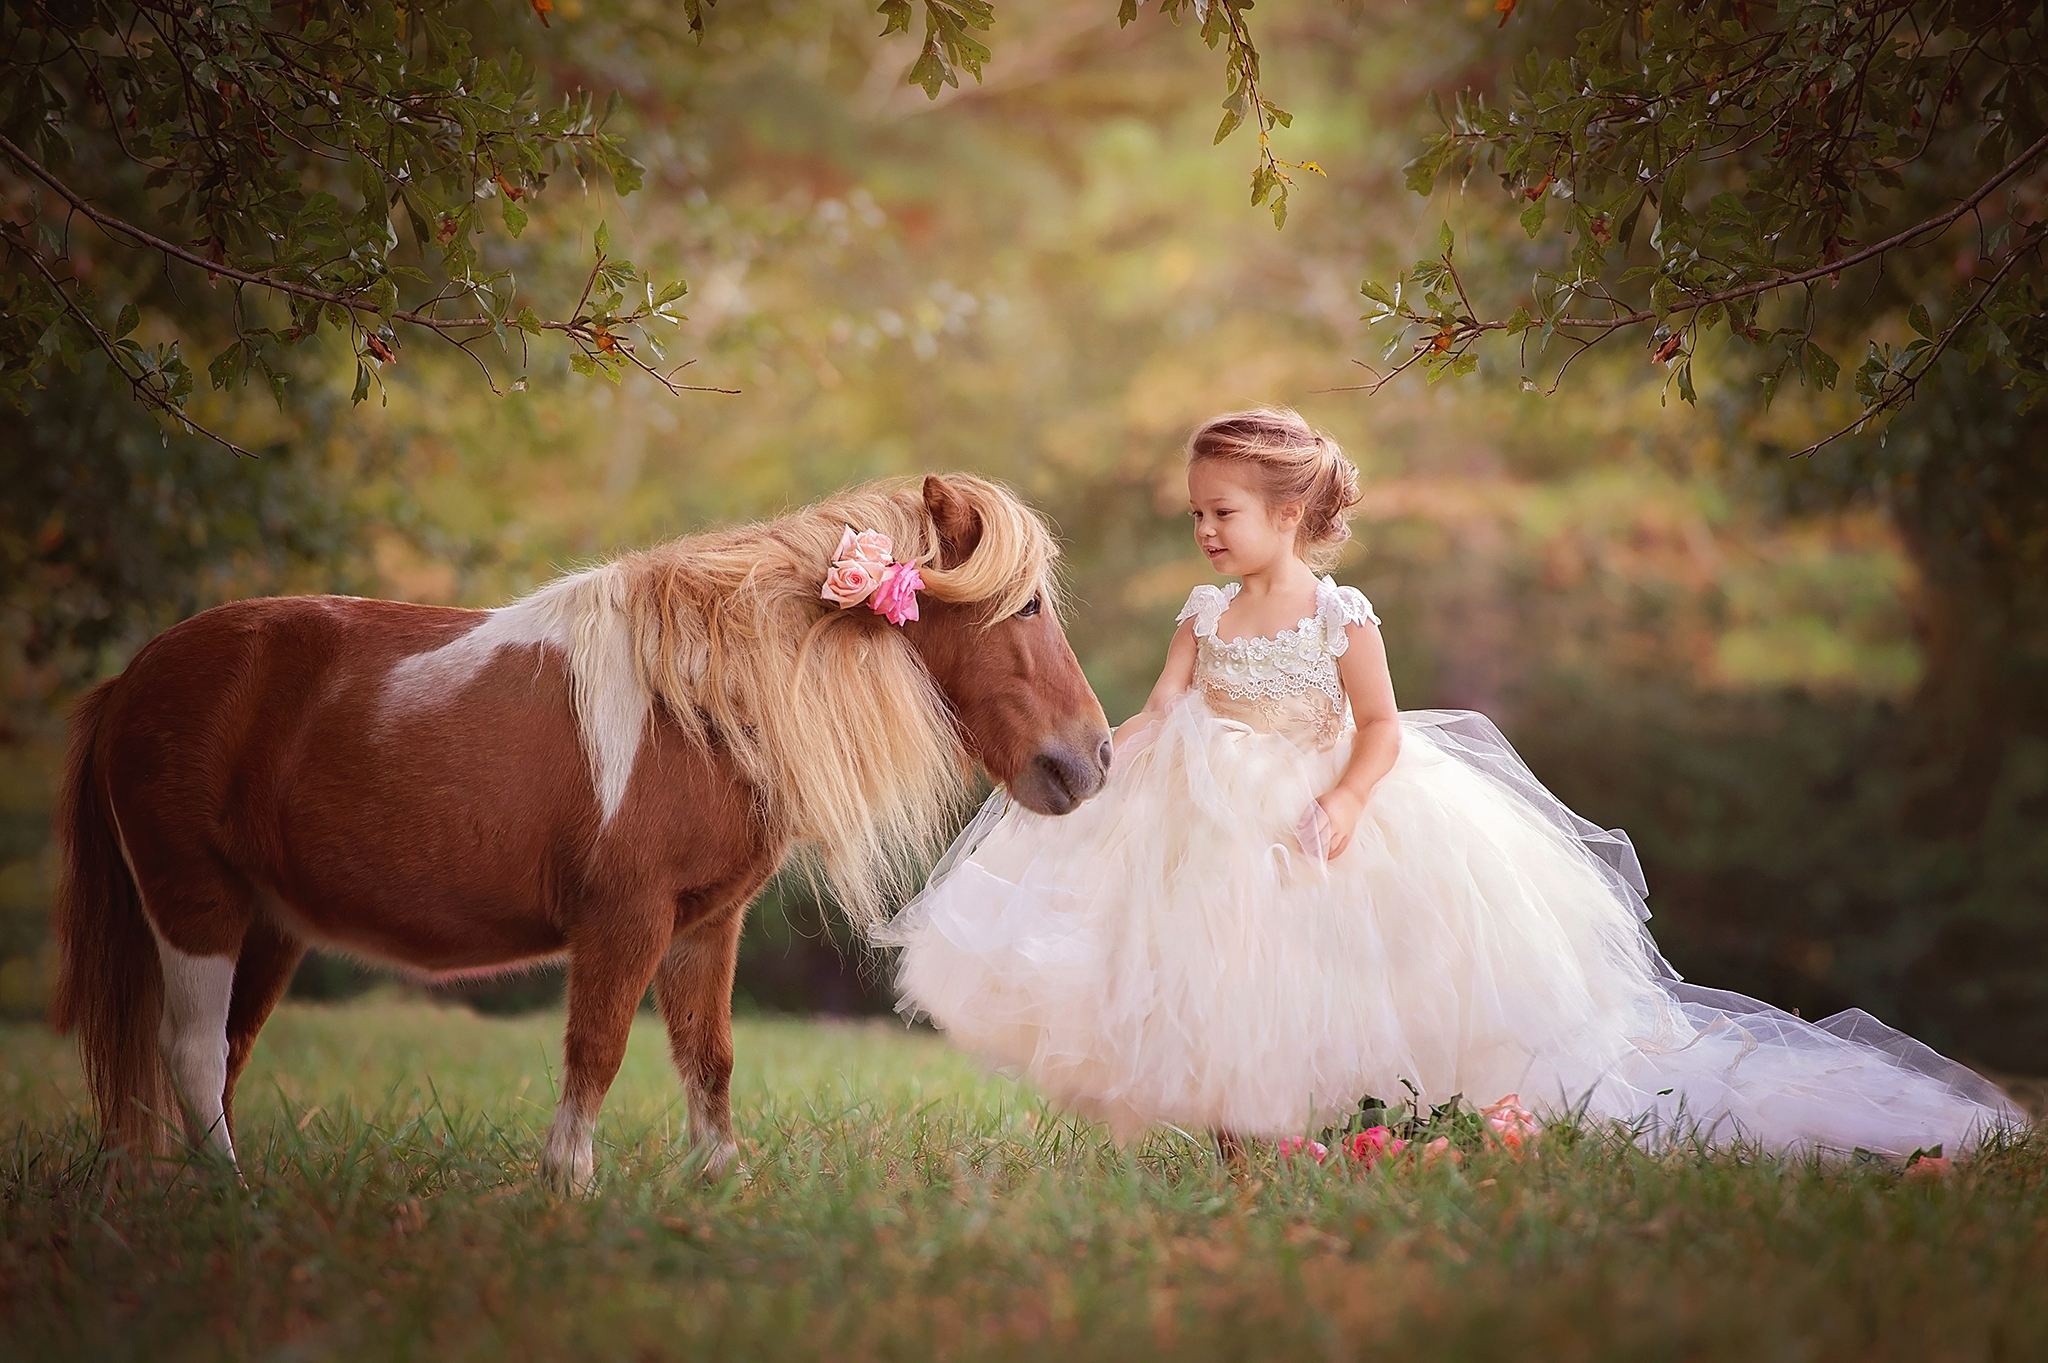 The-Princess-And-Her-Pony-Freckled-Flower-Photography